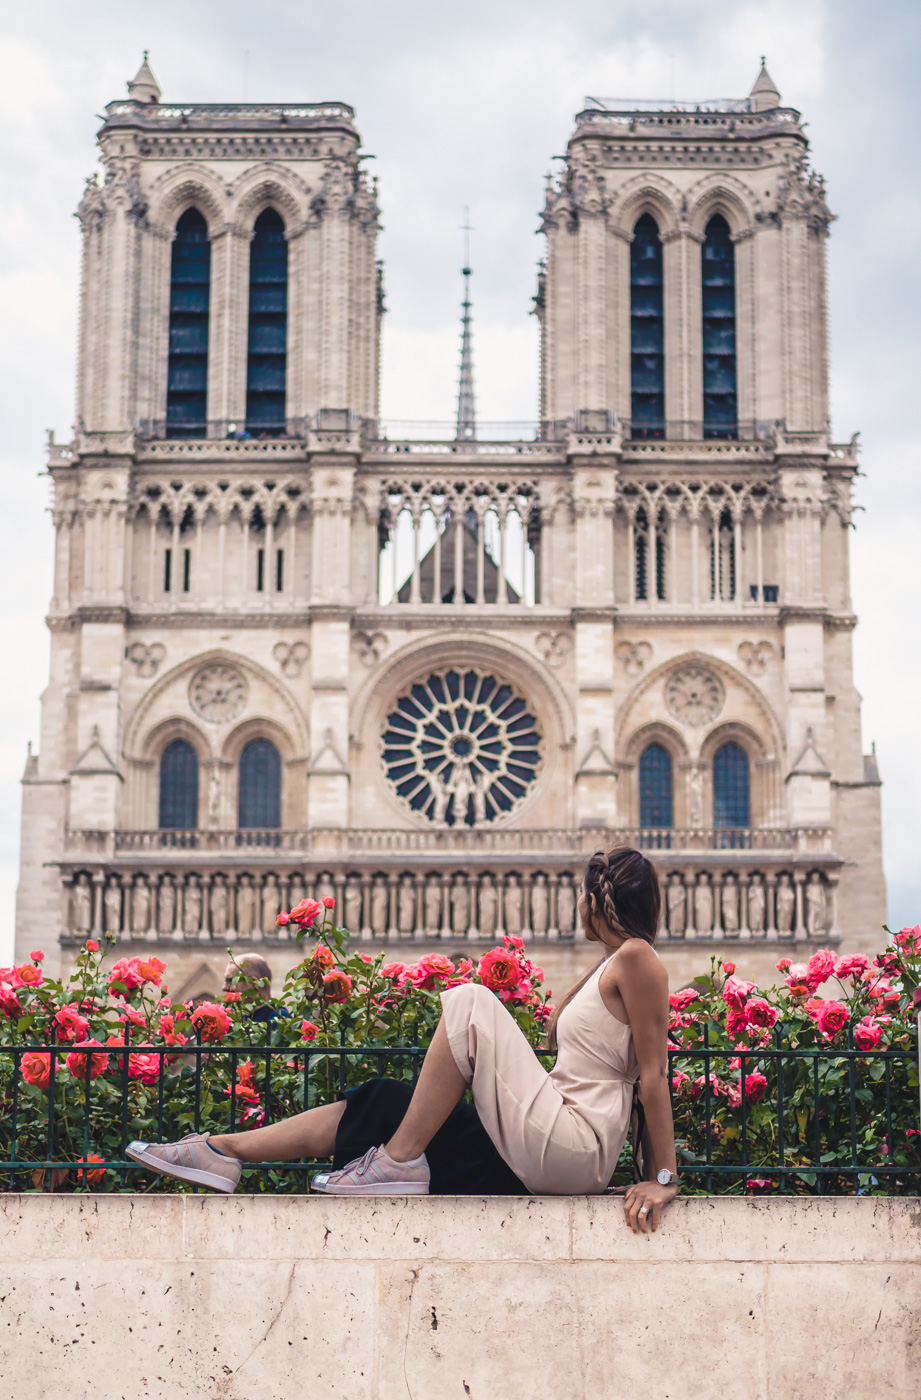 36 hours in Paris norte dame